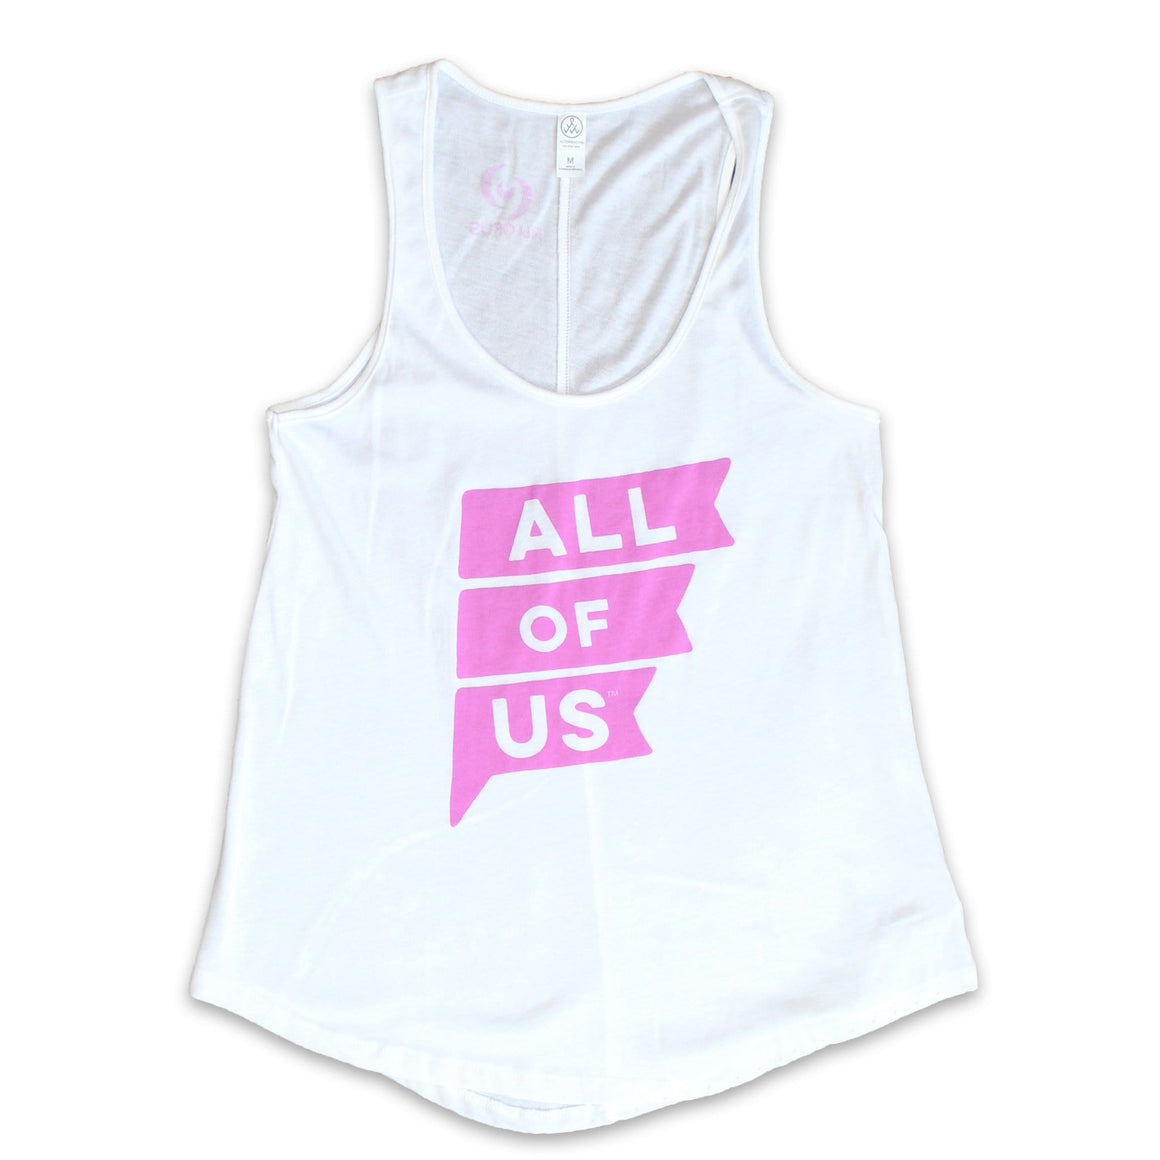 Women's white tank with Orchid Pink All of Us Flag logo